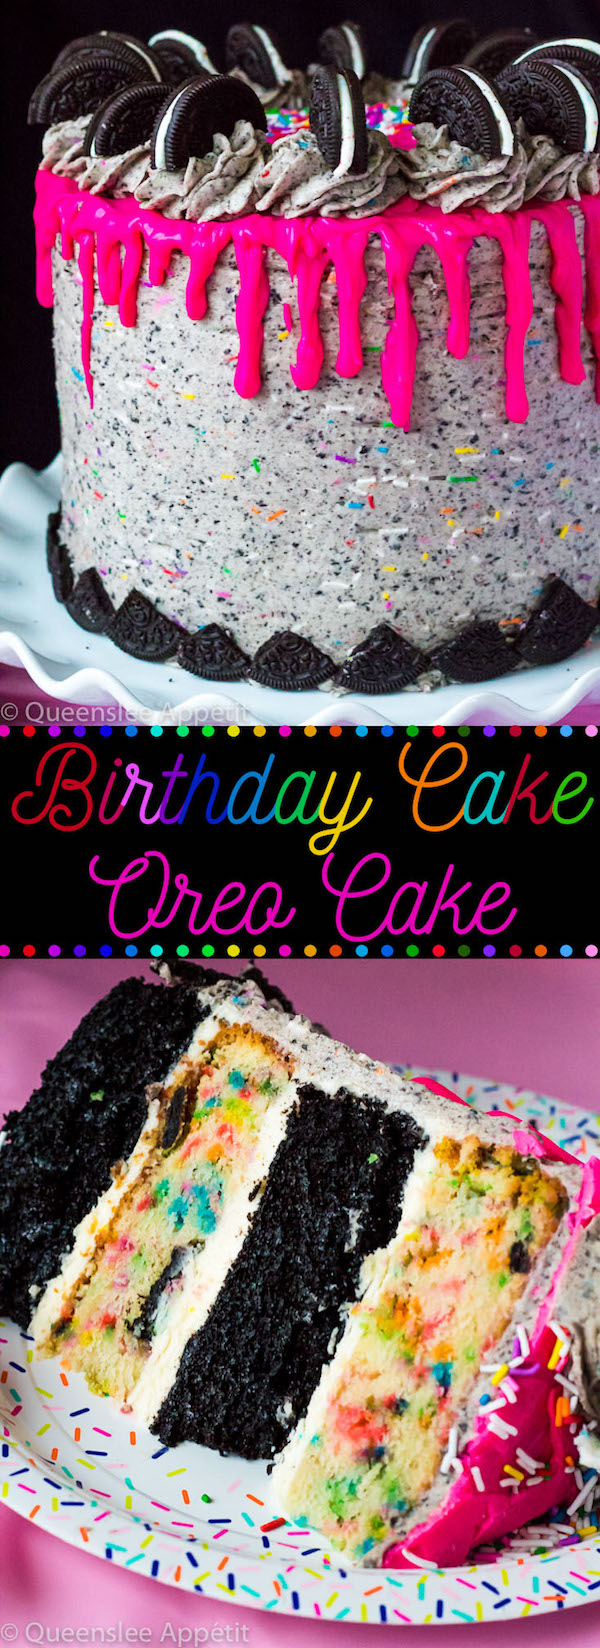 This Birthday Cake Oreo Cake just screams PARTY! Layers of dark chocolate and Funfetti Birthday Oreo cake, filled and frosted with birthday cake Oreo frosting and drizzled with hot pink ganache. This is the ultimate celebration cake!